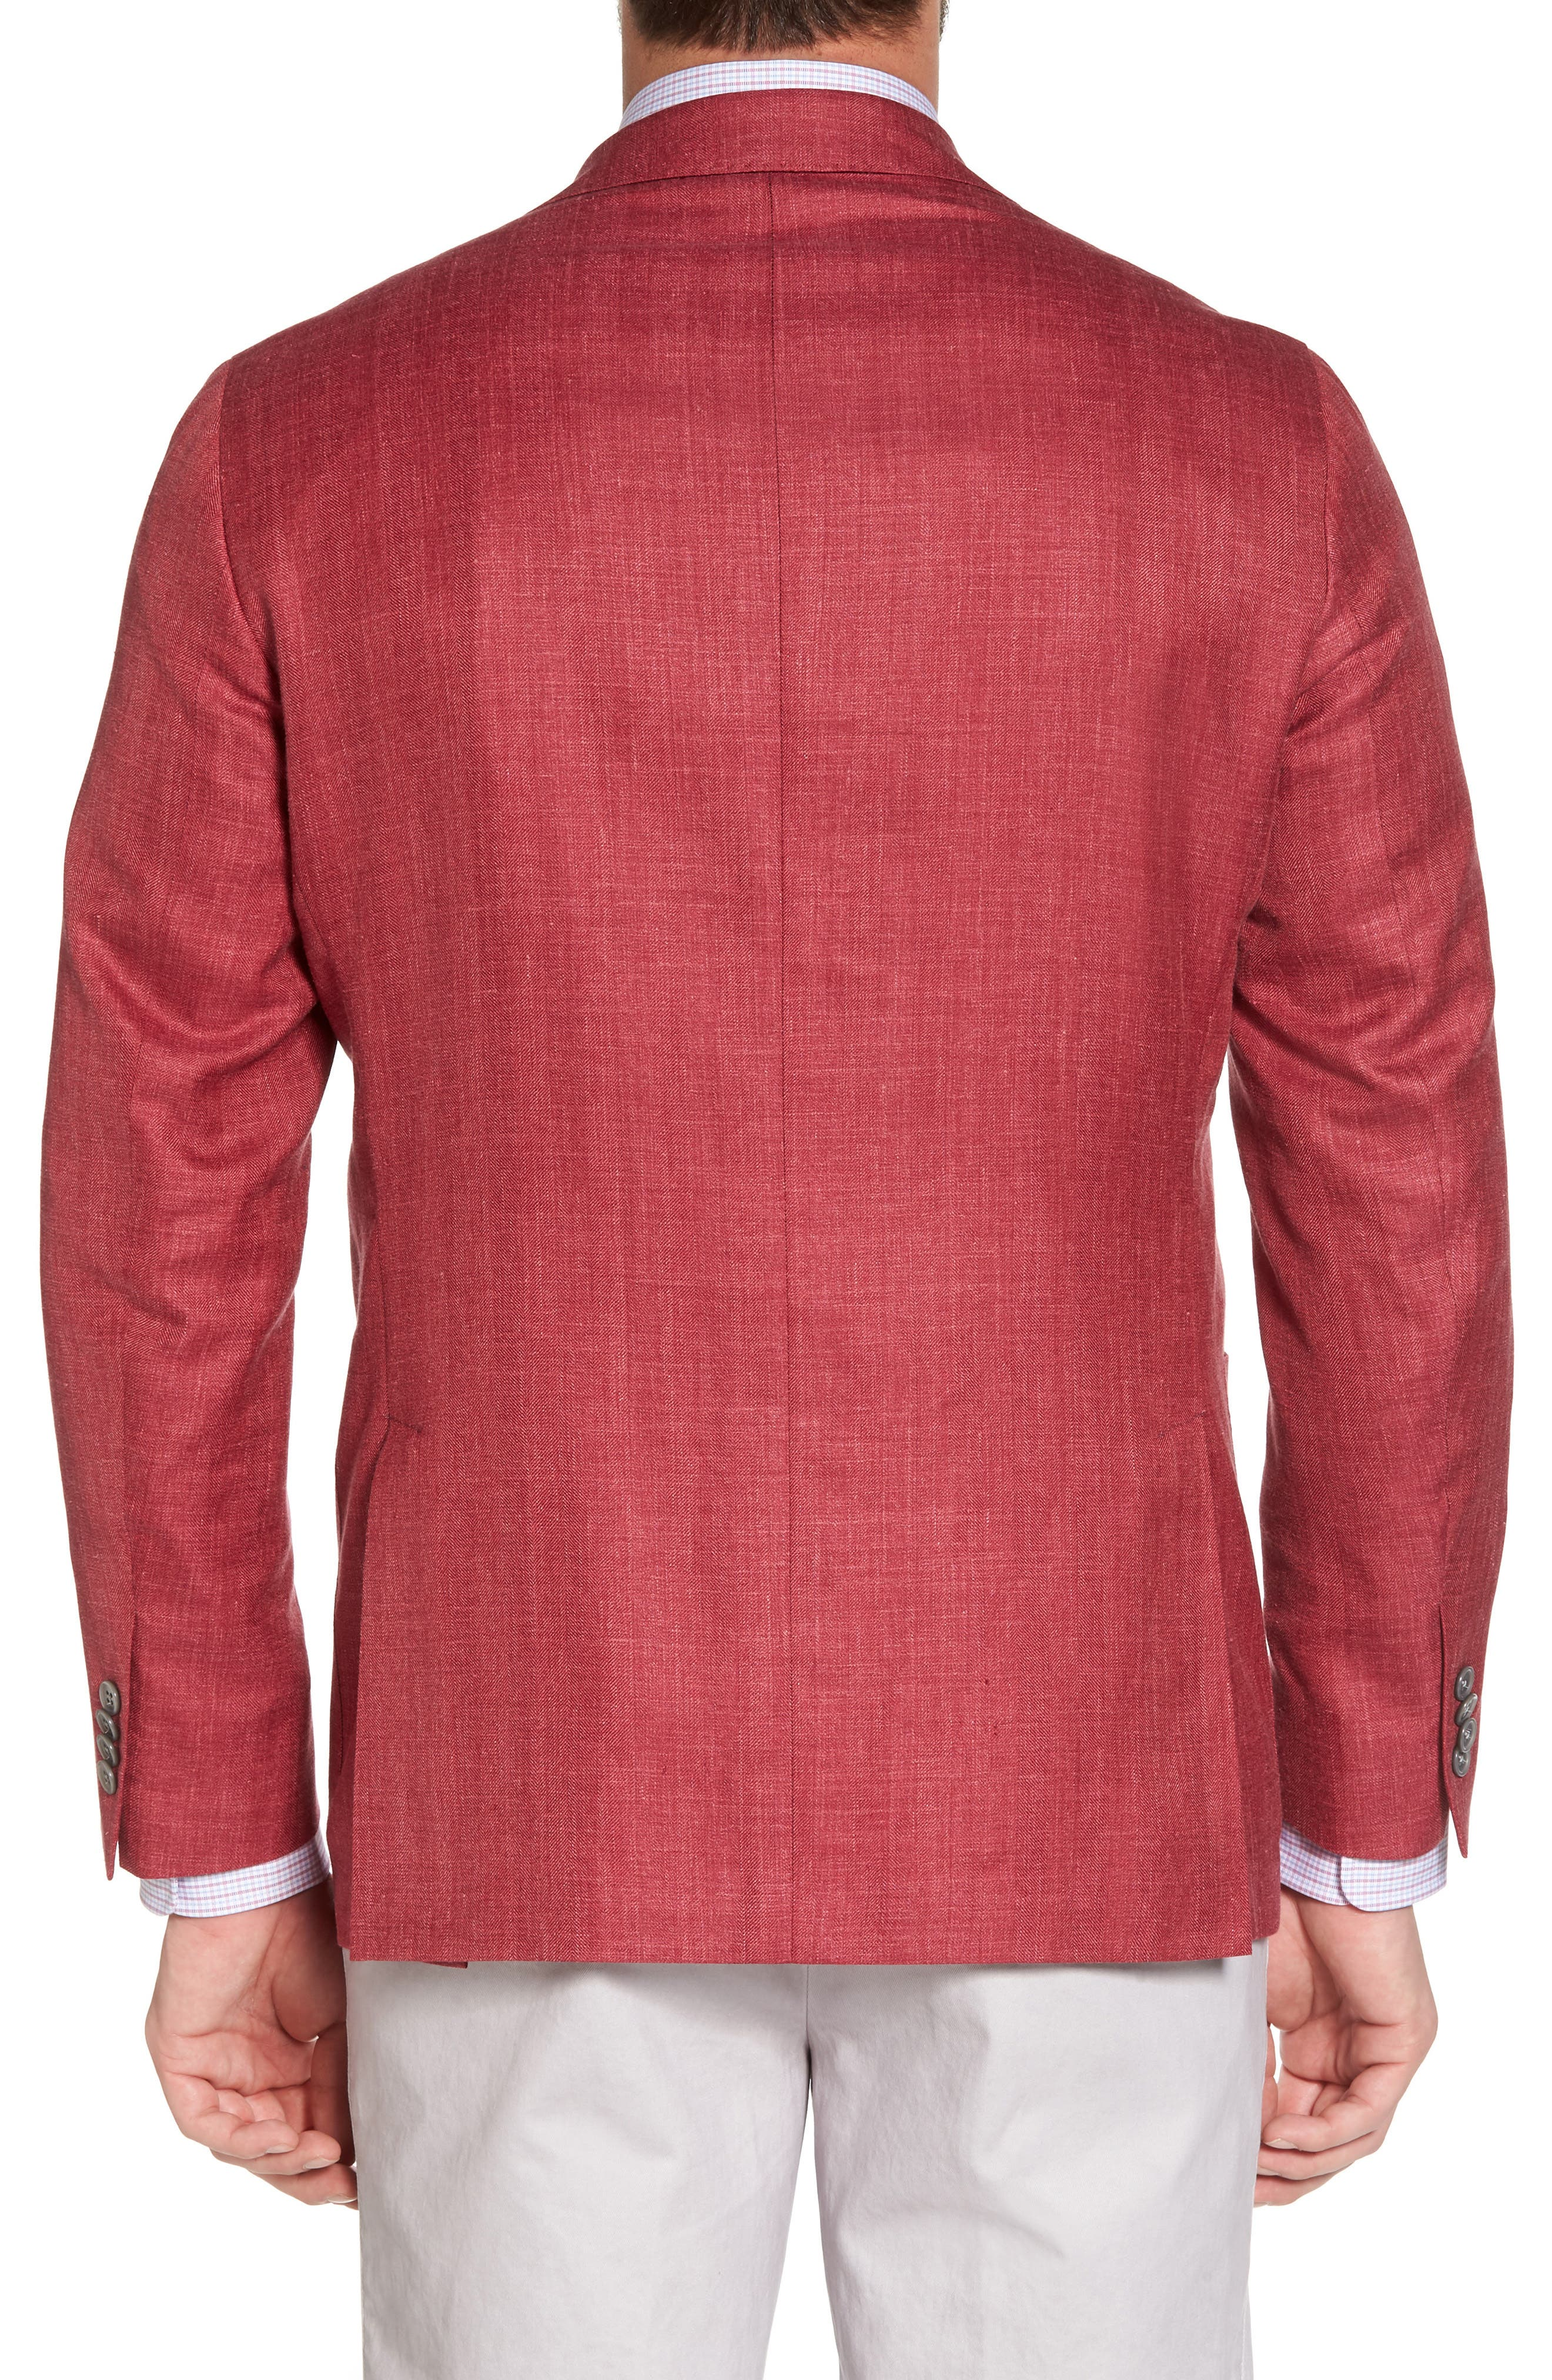 Aiden Classic Fit Wool Blend Blazer,                             Alternate thumbnail 2, color,                             Red